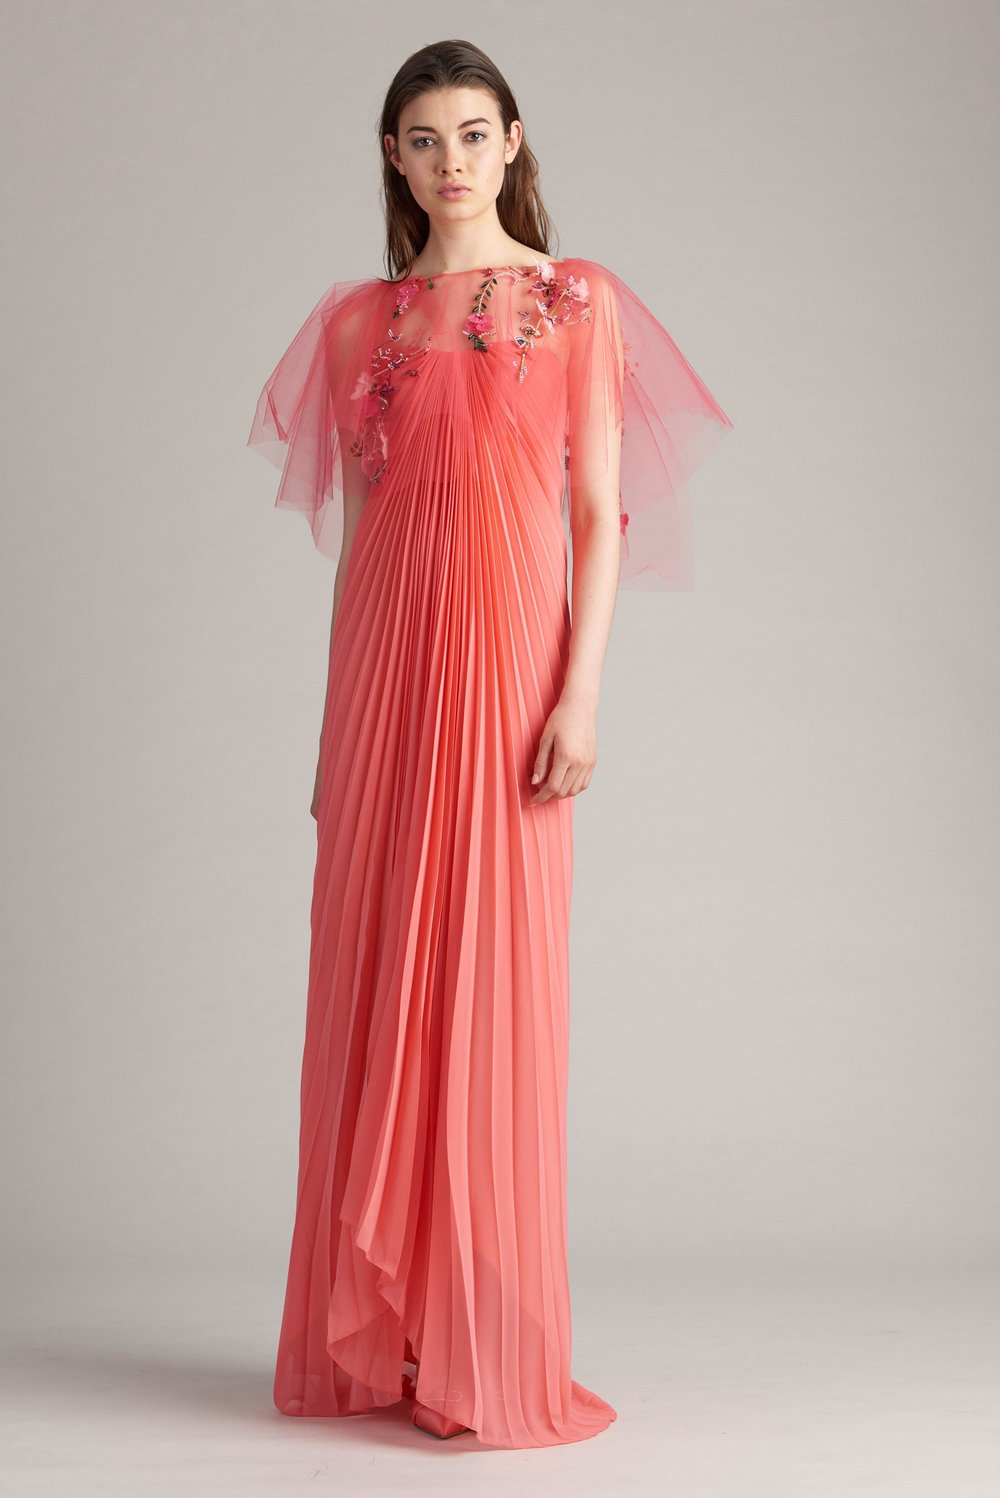 33-Monique-Lhuillier-Resort-18.jpg